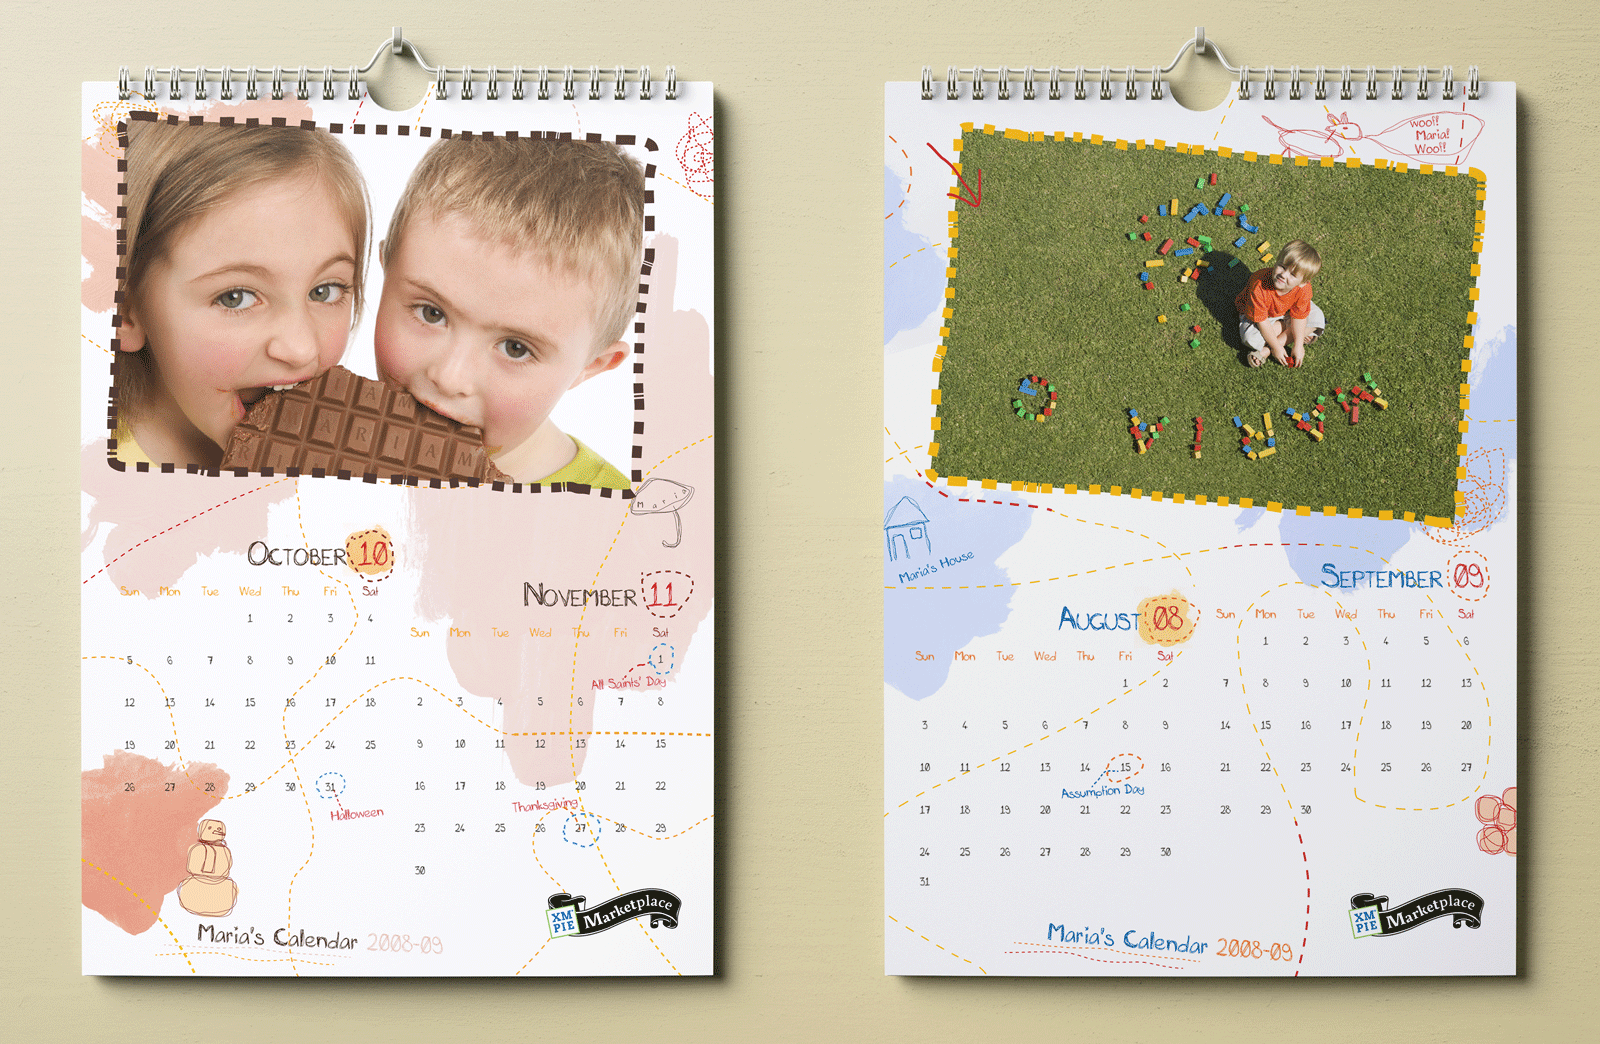 https://bigeyes.co.il/wp-content/uploads/2019/07/kids-calendar-2.png